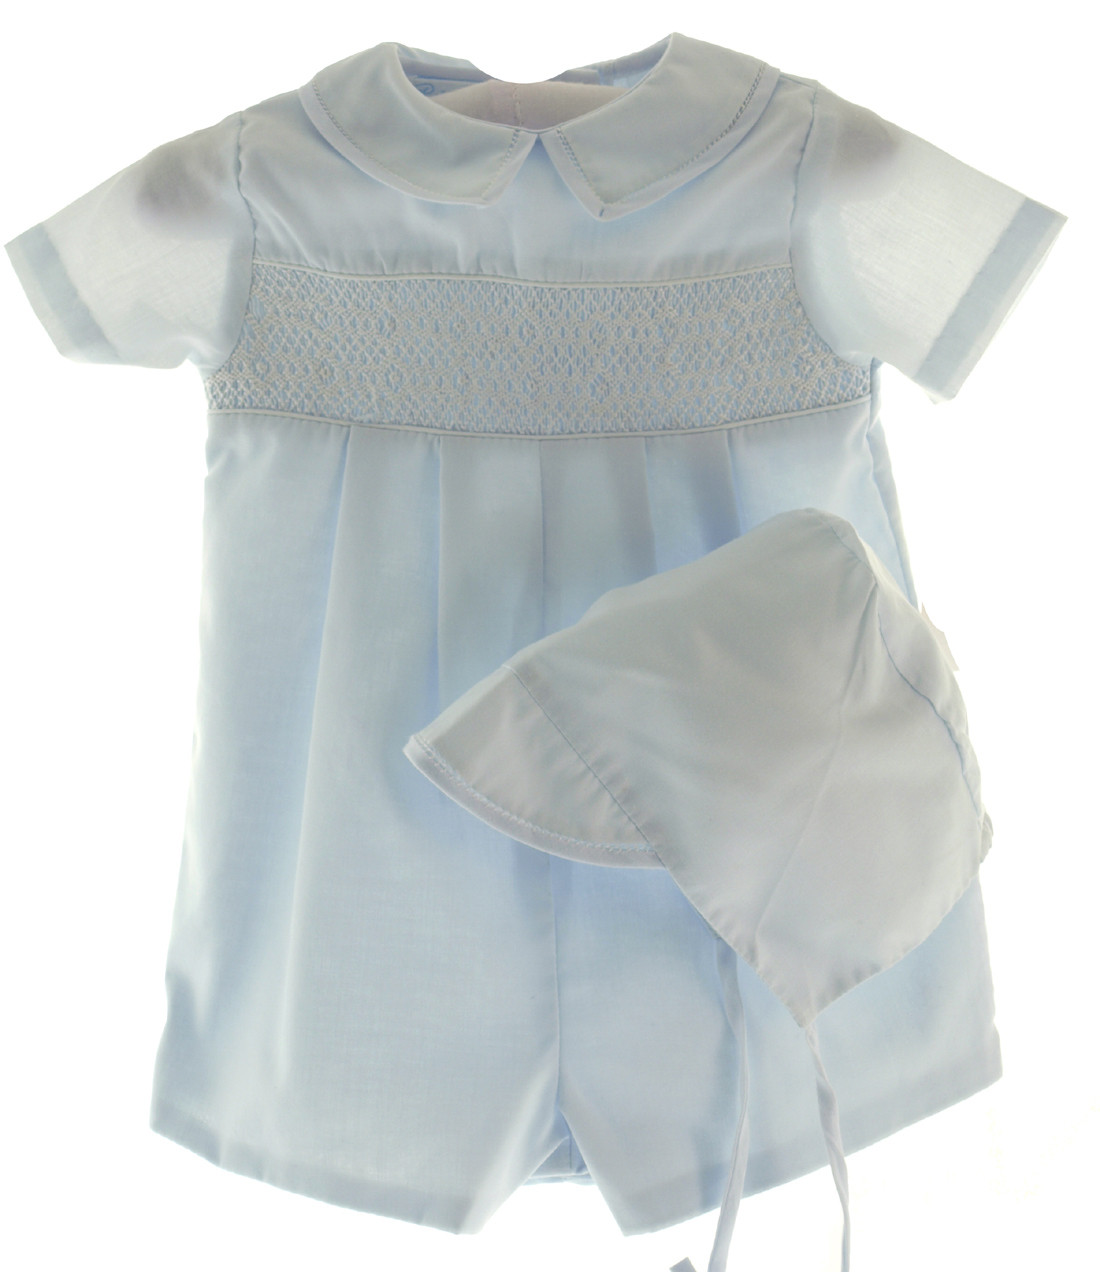 17b92170ca78c Loading zoom. Boys Smocked Blue Romper Outfit - Petit Ami. Click to enlarge